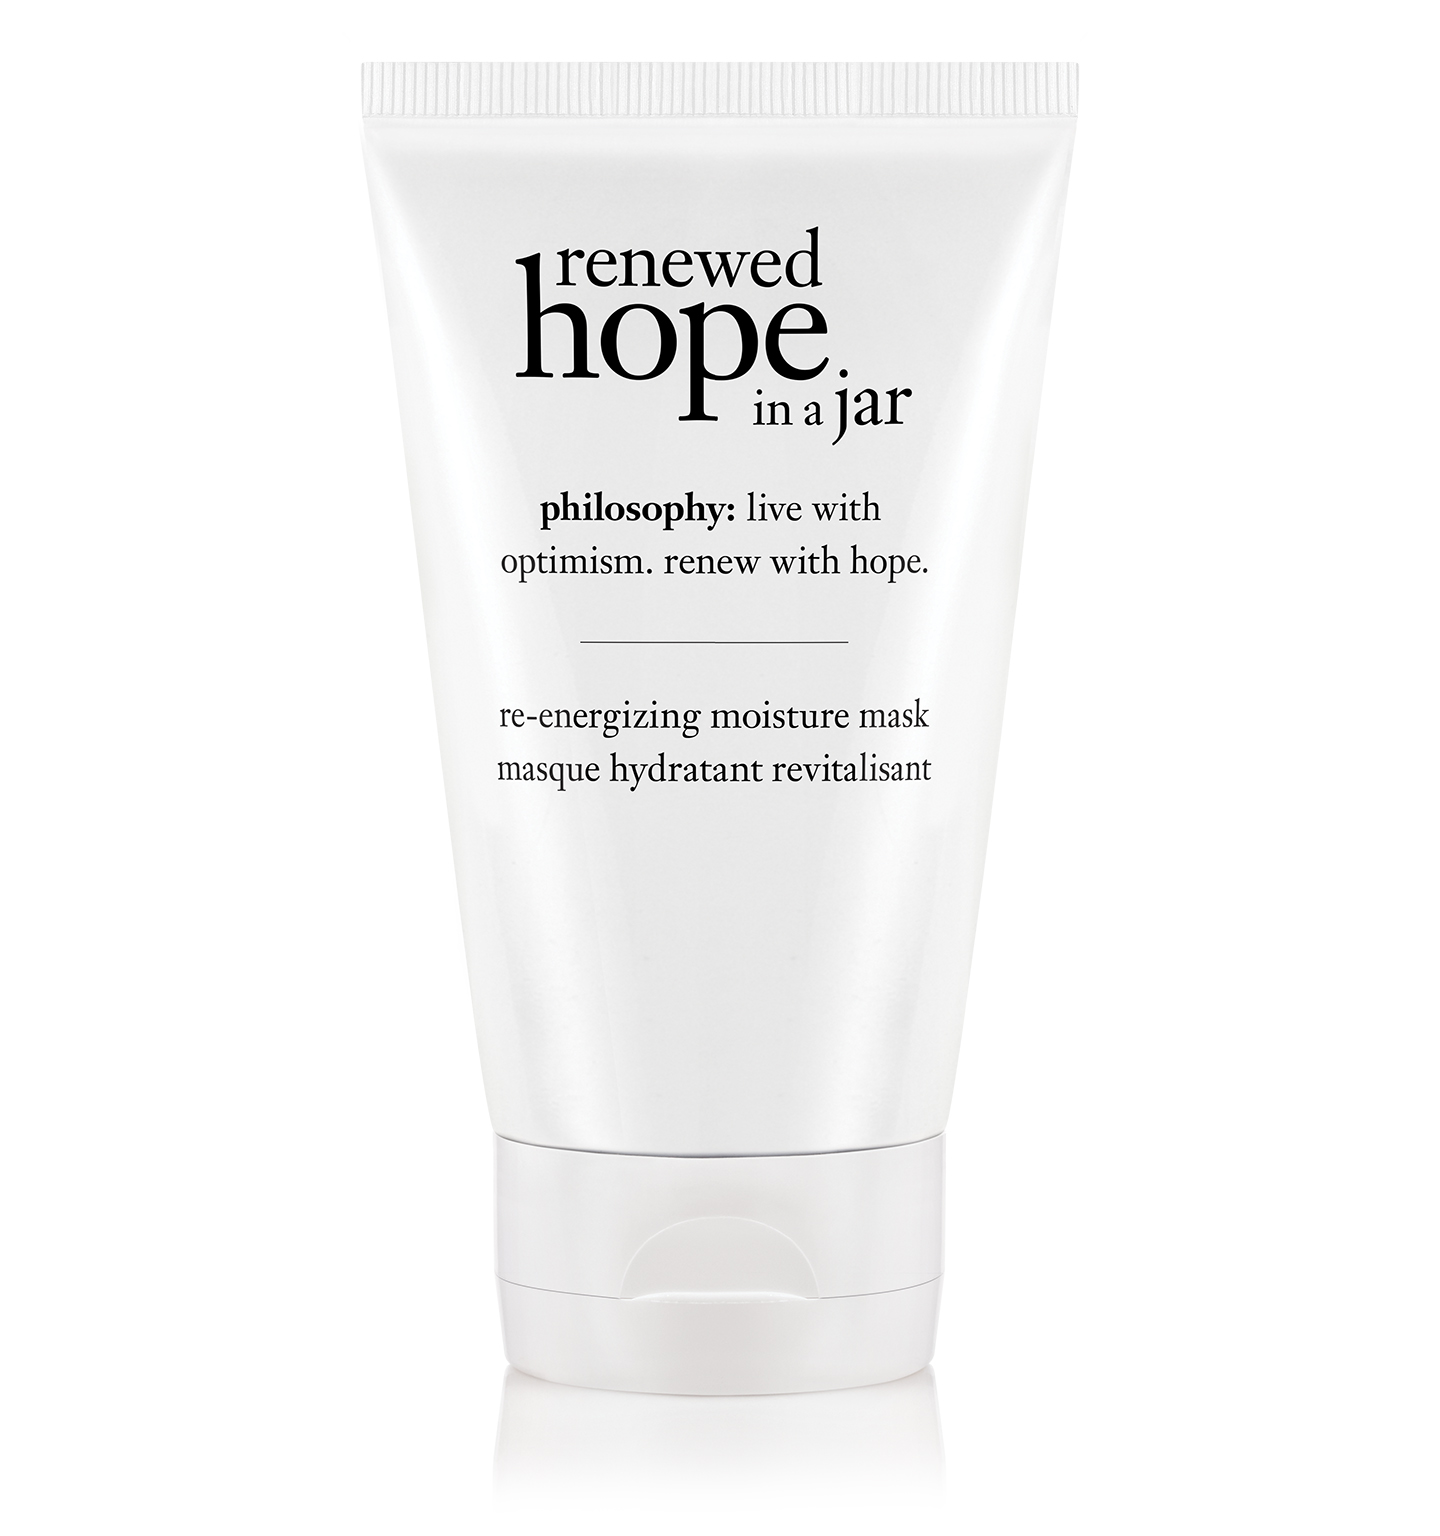 renewed hope in a jar re-energizing moisture mask